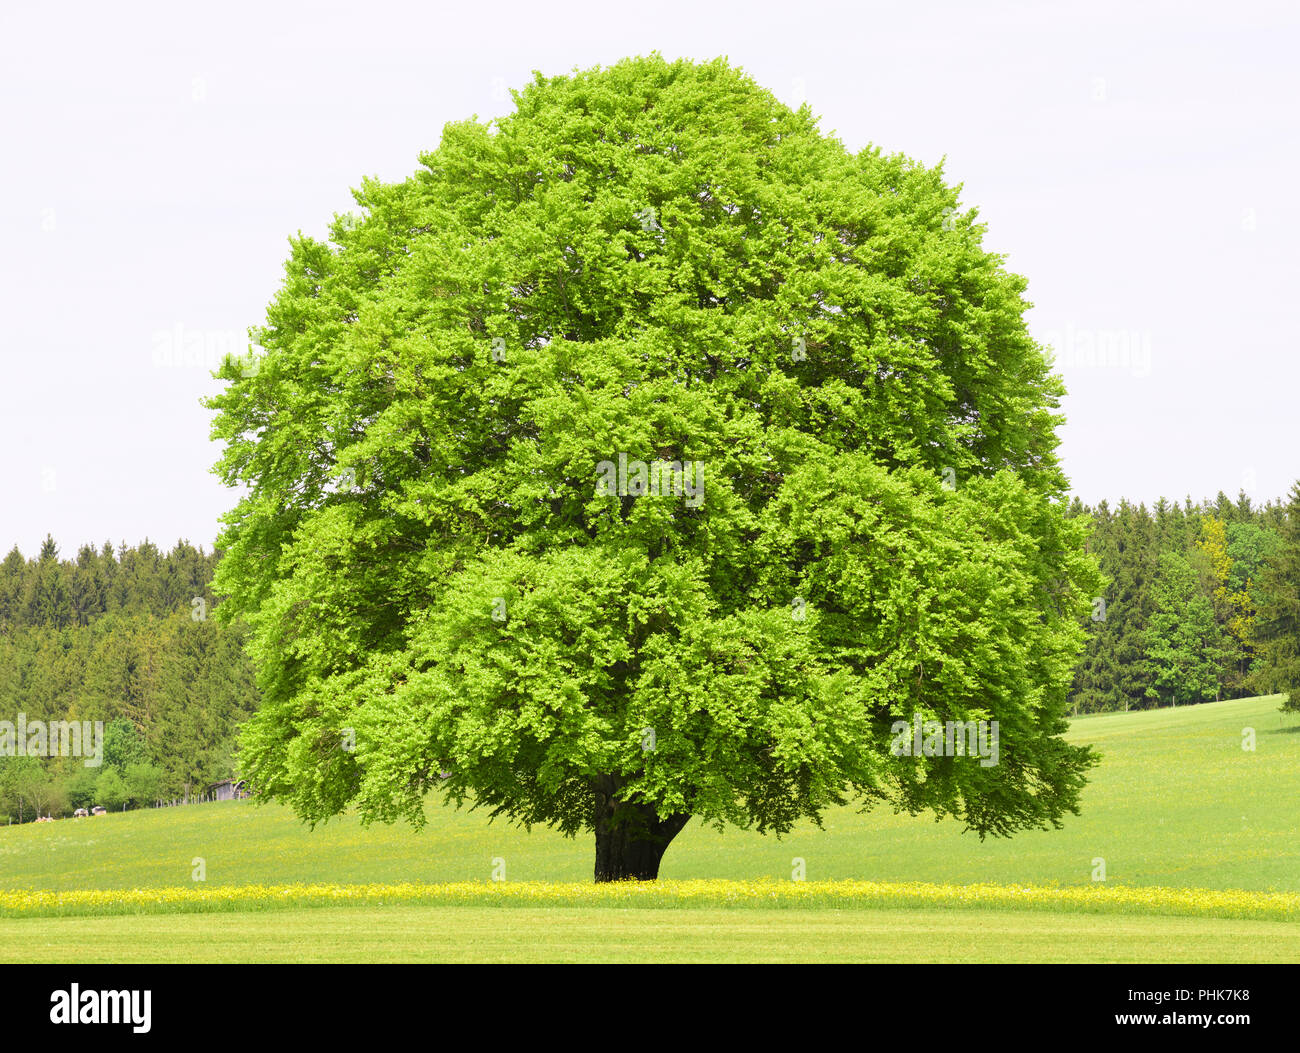 single big beech tree in meadow at spring - Stock Image